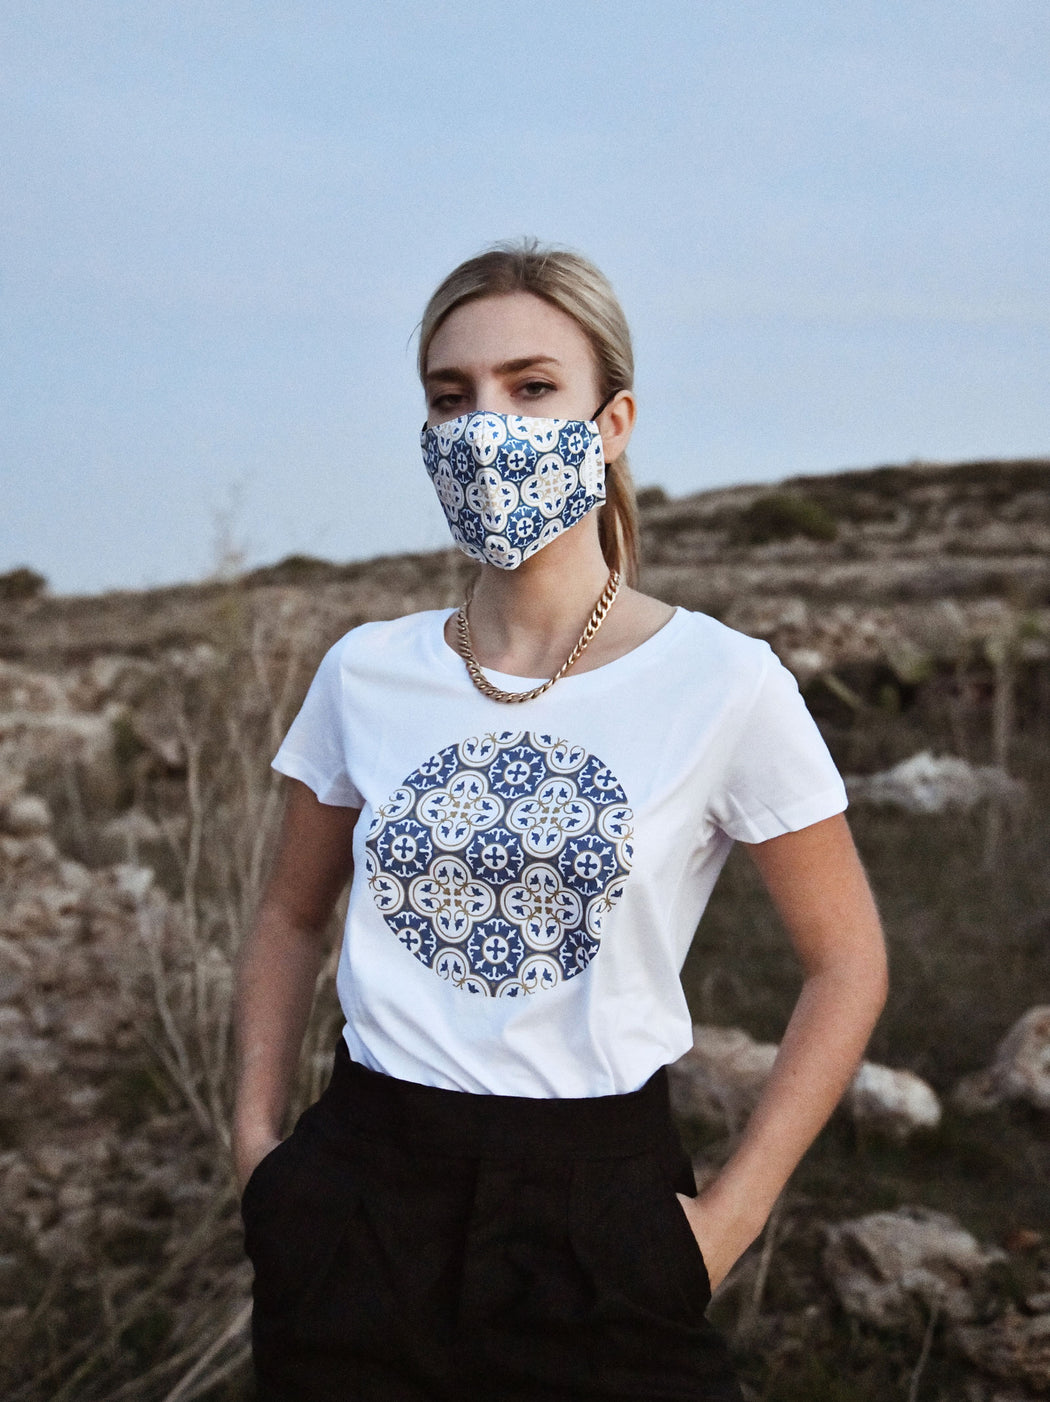 MADUMA T-Shirt Women + Face Mask